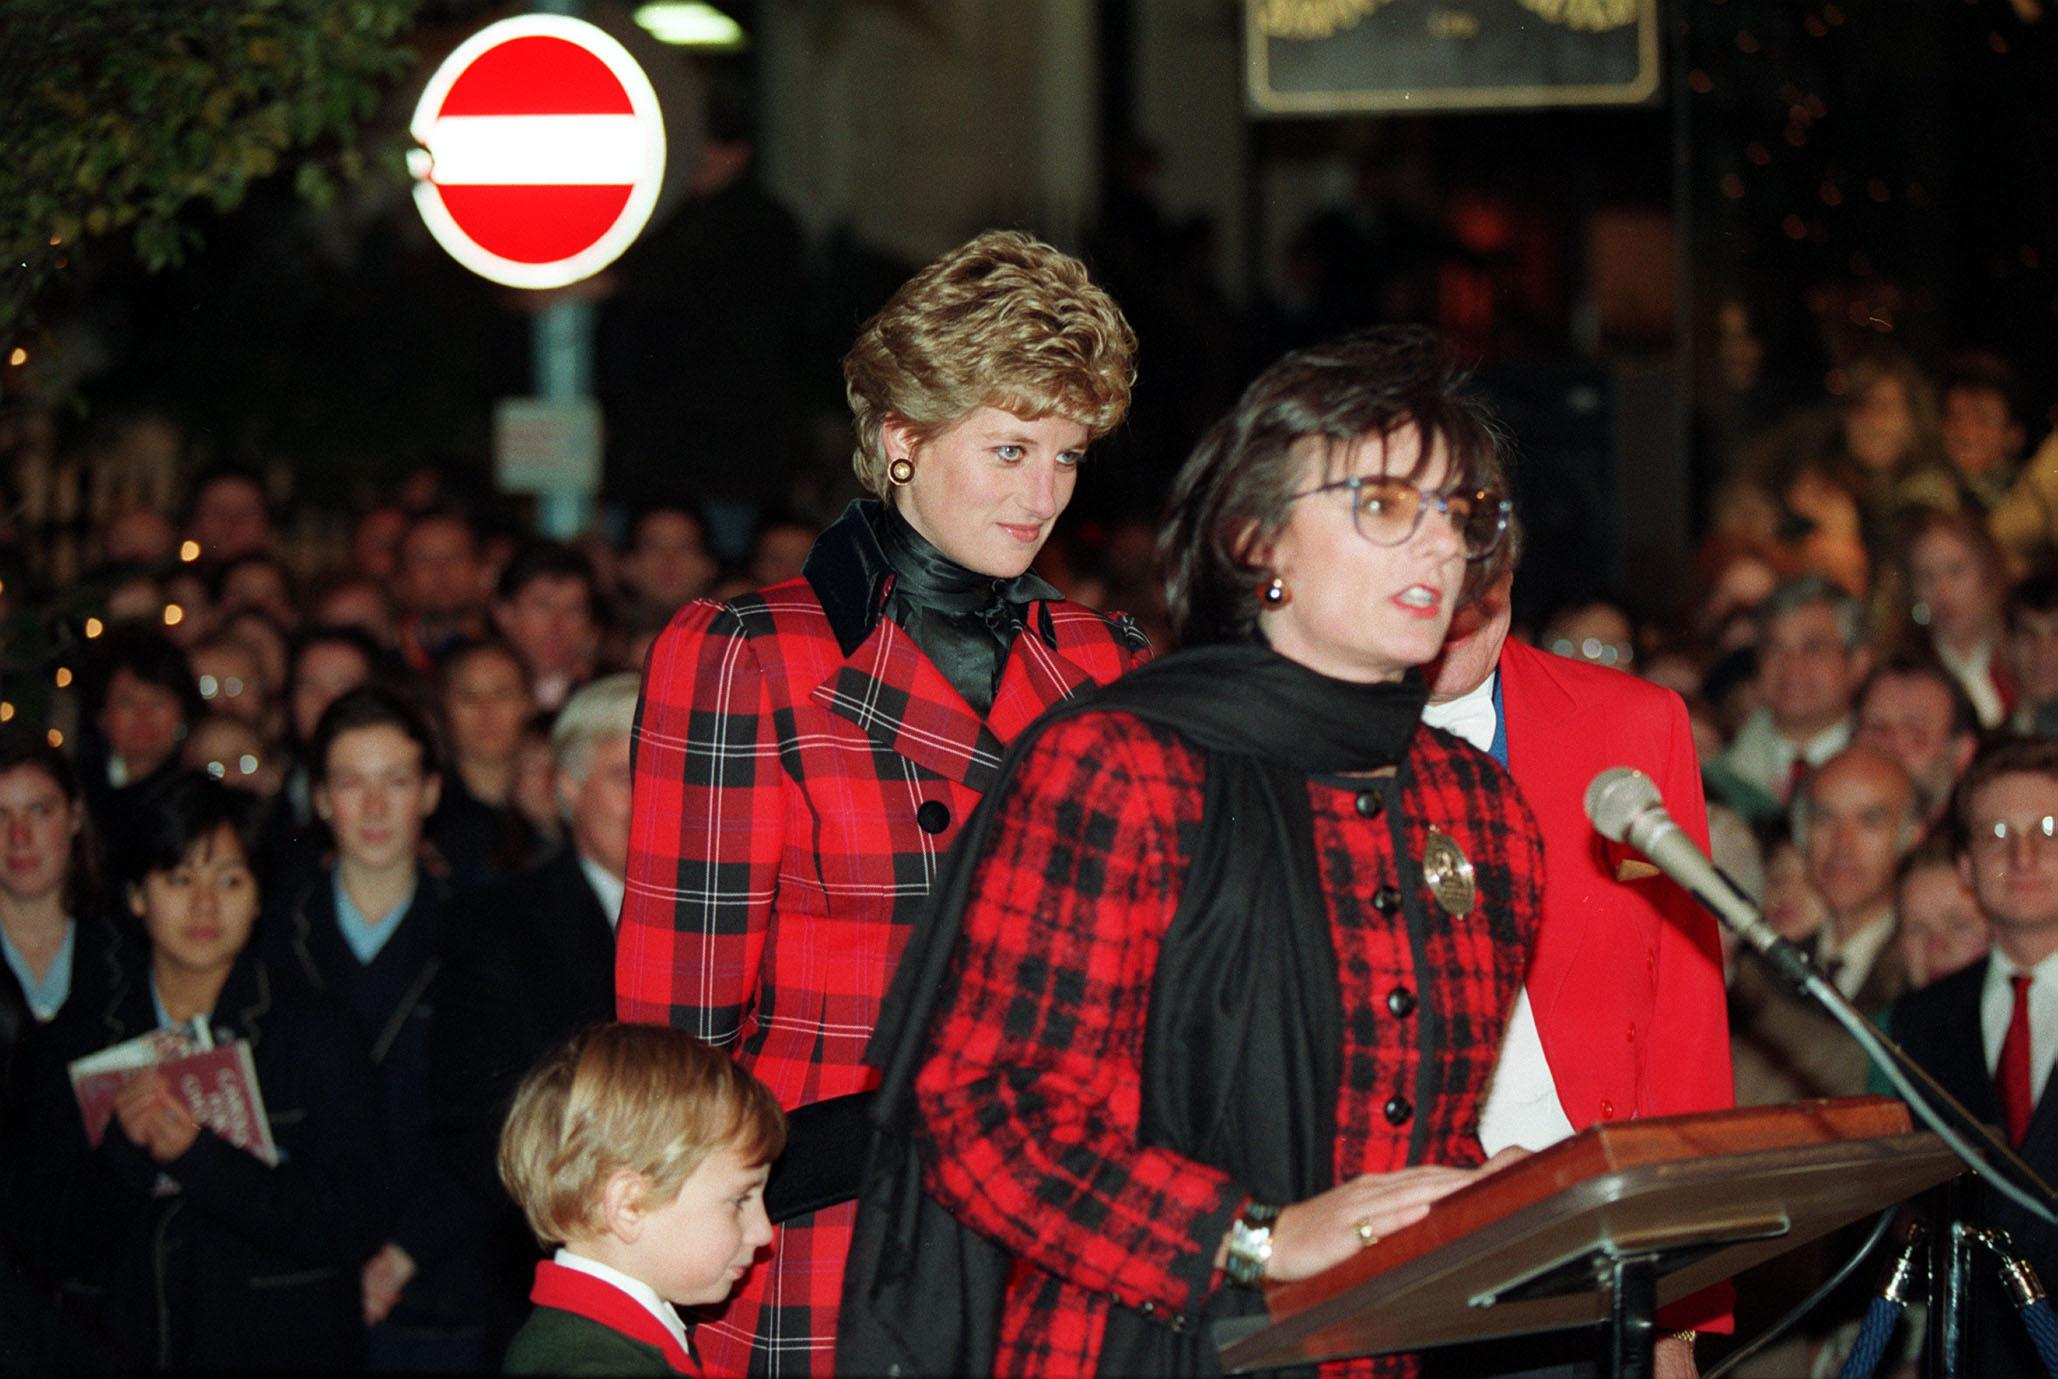 Rosa Monckton speaking at London's Bond Street before switching on the Christmas lights whilePrincess Diana stands by onNovember 17, 1993 |Photo:Martin Keene - PA Images/Getty Images